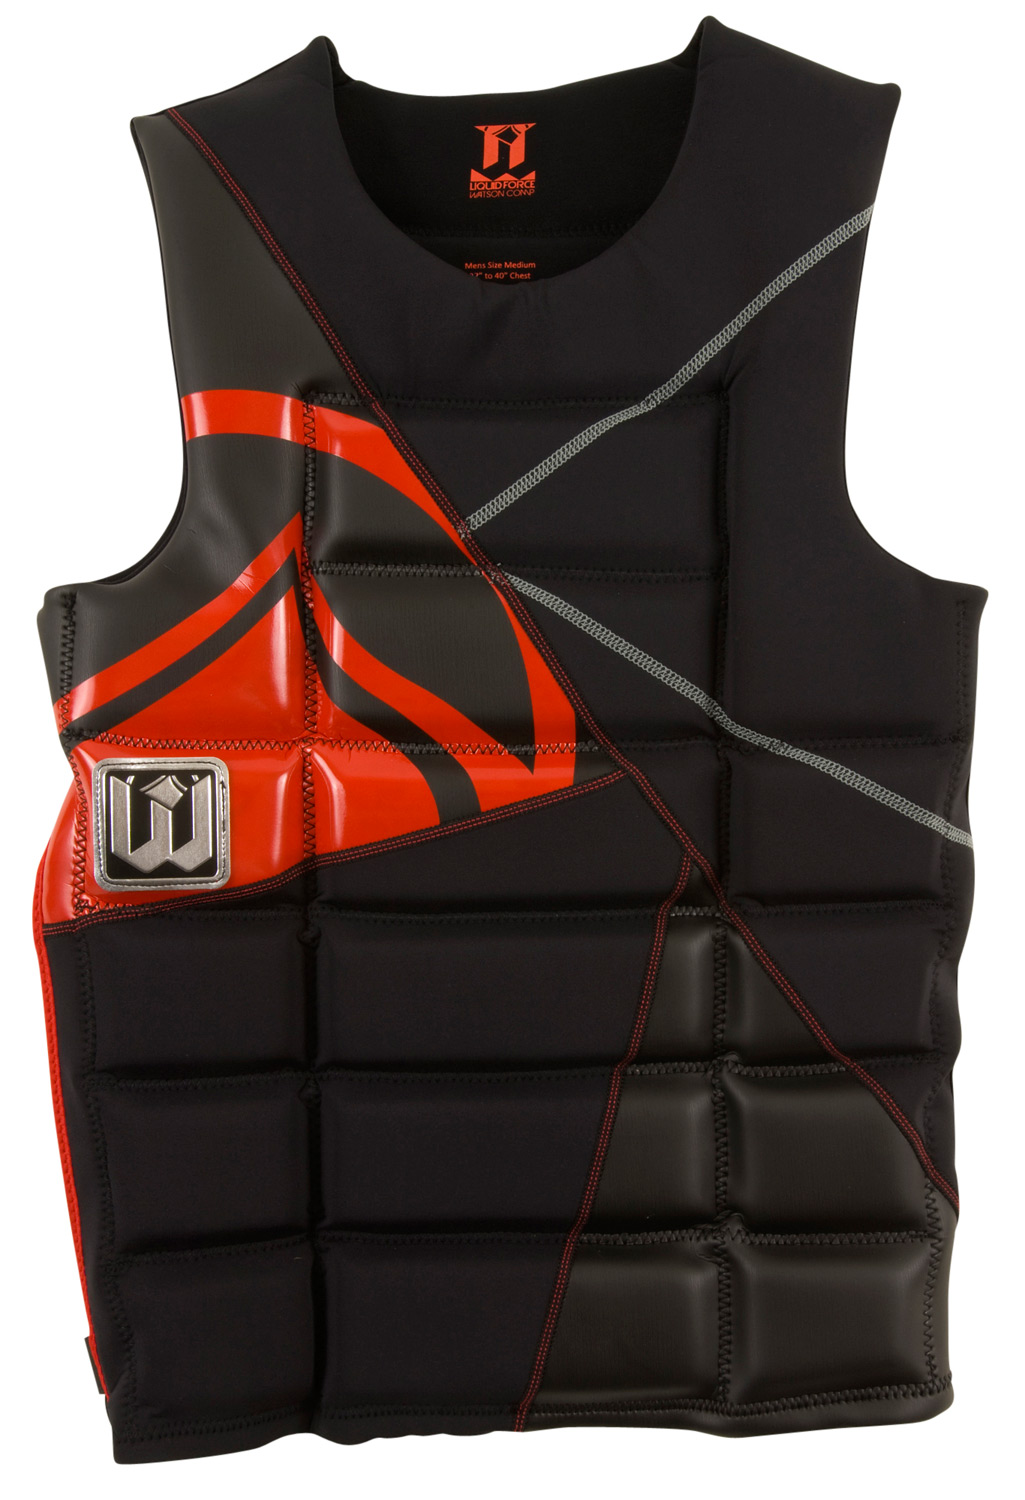 Wake When Watson brainstormed this vest with our design crew, he wanted a super thin vest with maximum comfort and range of motion. The result is his new comp vest that is a Hybrid of sorts. Similar to a pullover it comes without straps and buckles. The hybrid addition, however, is a small half zip down the back and drawstring on the front. The Watson Comp is the ultimate combination of lightweight comfort, performance flex, and ease of entry that will keep you enjoying the wake all summer long!* Pullover System: Increased forward flex and comfort... no buckles to get in the way * Side Half-Zip: Half zipper on down the back makes it easier to get into and out of * Quilted Foam Panels: Designed to fit you perfectly * Super-Stretch Neoprene Flex panels allow vest to move in sync with your movements * Strapless design: Clean and simple with nothing to get in your way on handle passes. * Non CGA Approved - $51.95